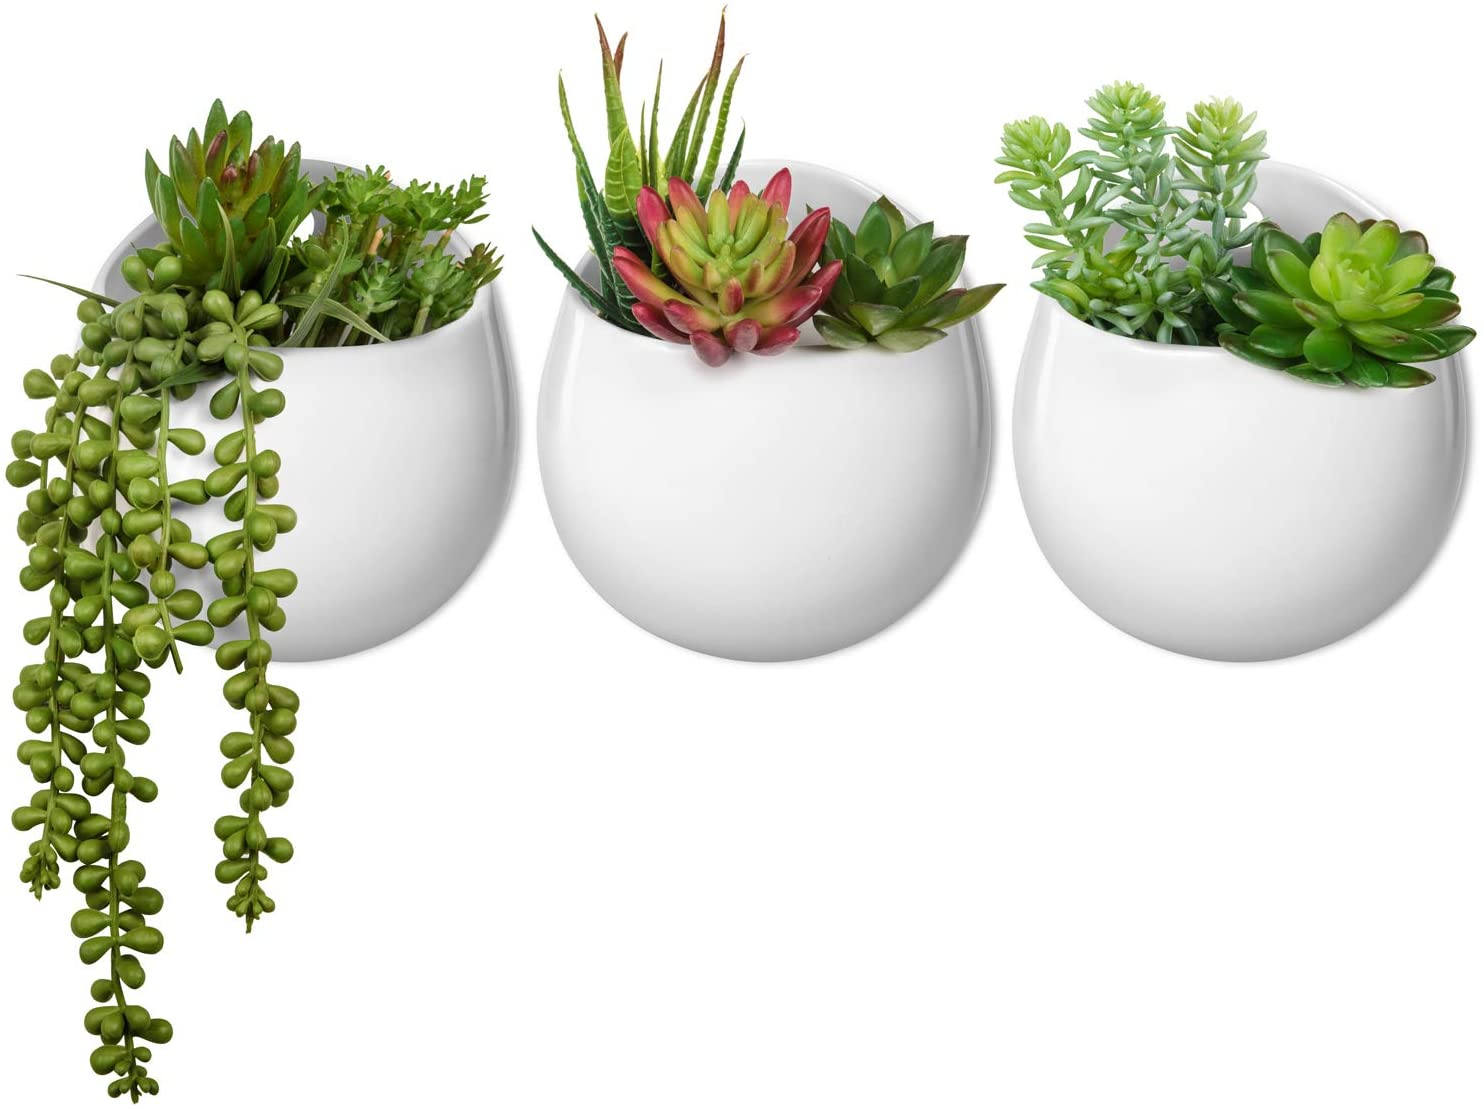 Amazon Com Mkono Wall Planter With Artificial Plants Decorative Potted Fake Succulents Picks Assorted Faux Succulent In Modern Ceramic Hanging Plant Pot Vase For Home Decor Set Of 3 Garden Outdoor